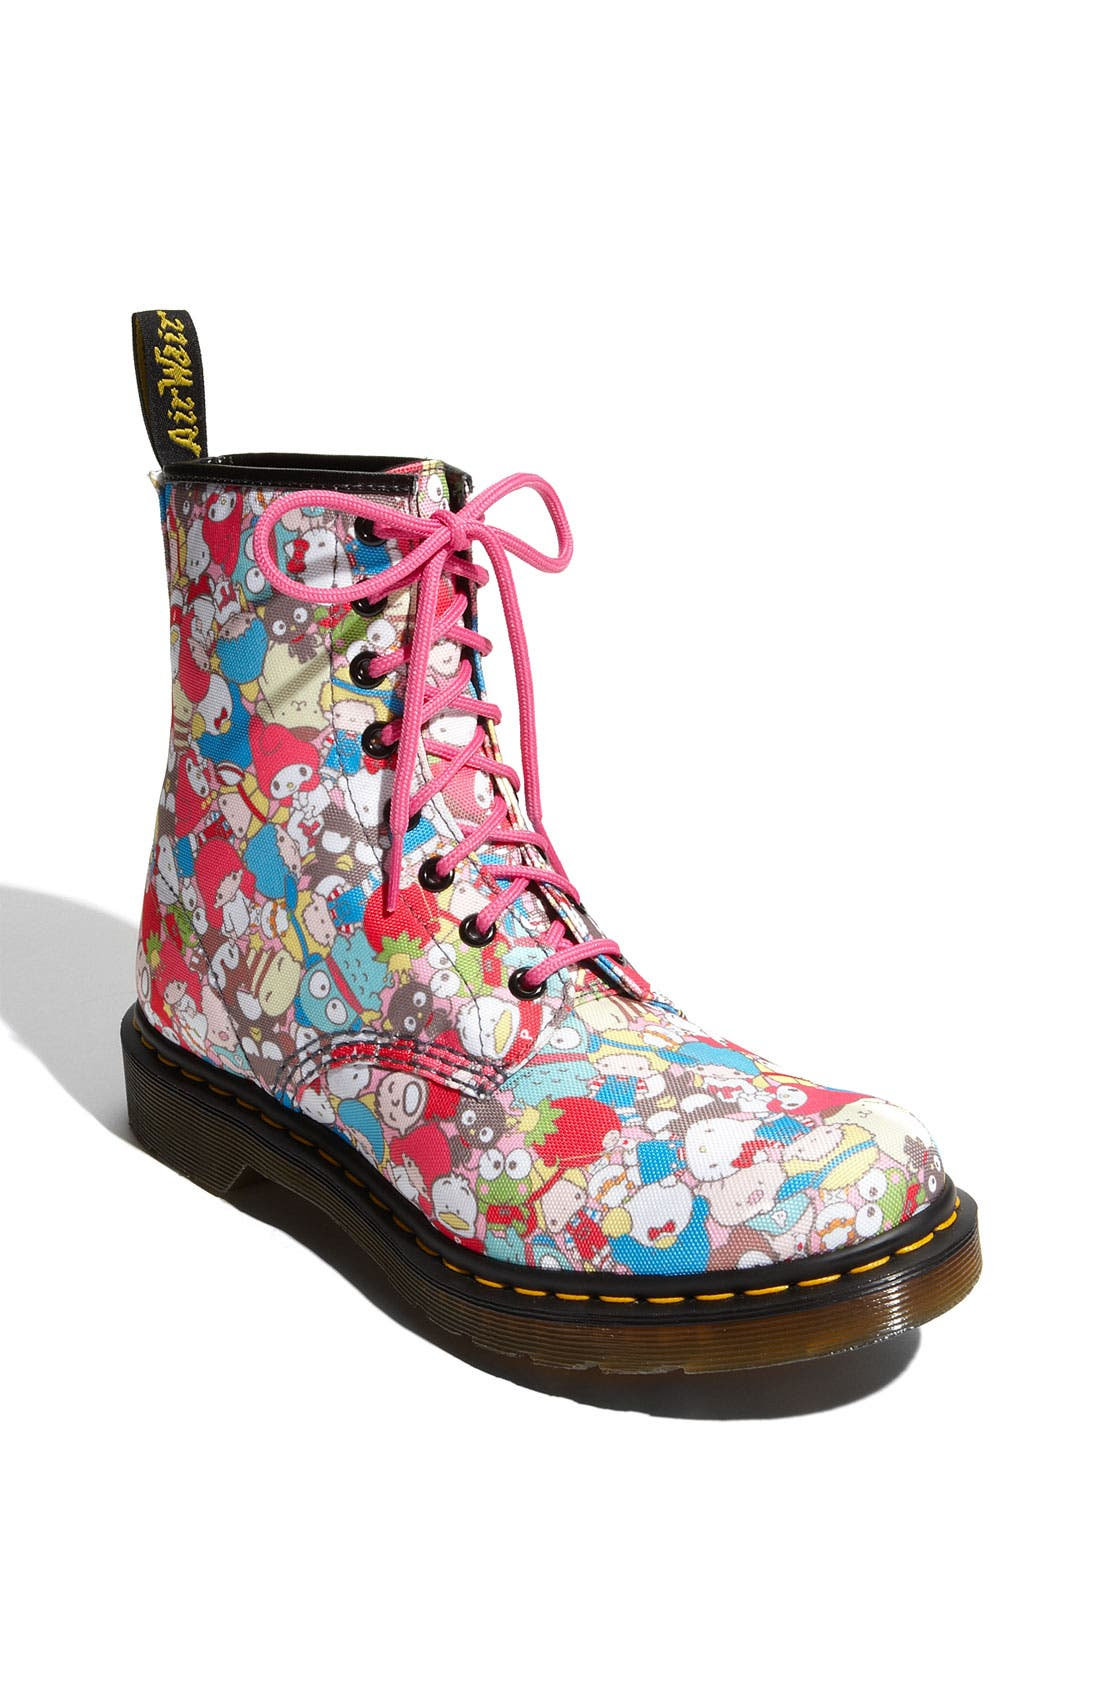 Alternate Image 1 Selected - Dr. Martens 'Sanrio' Boot